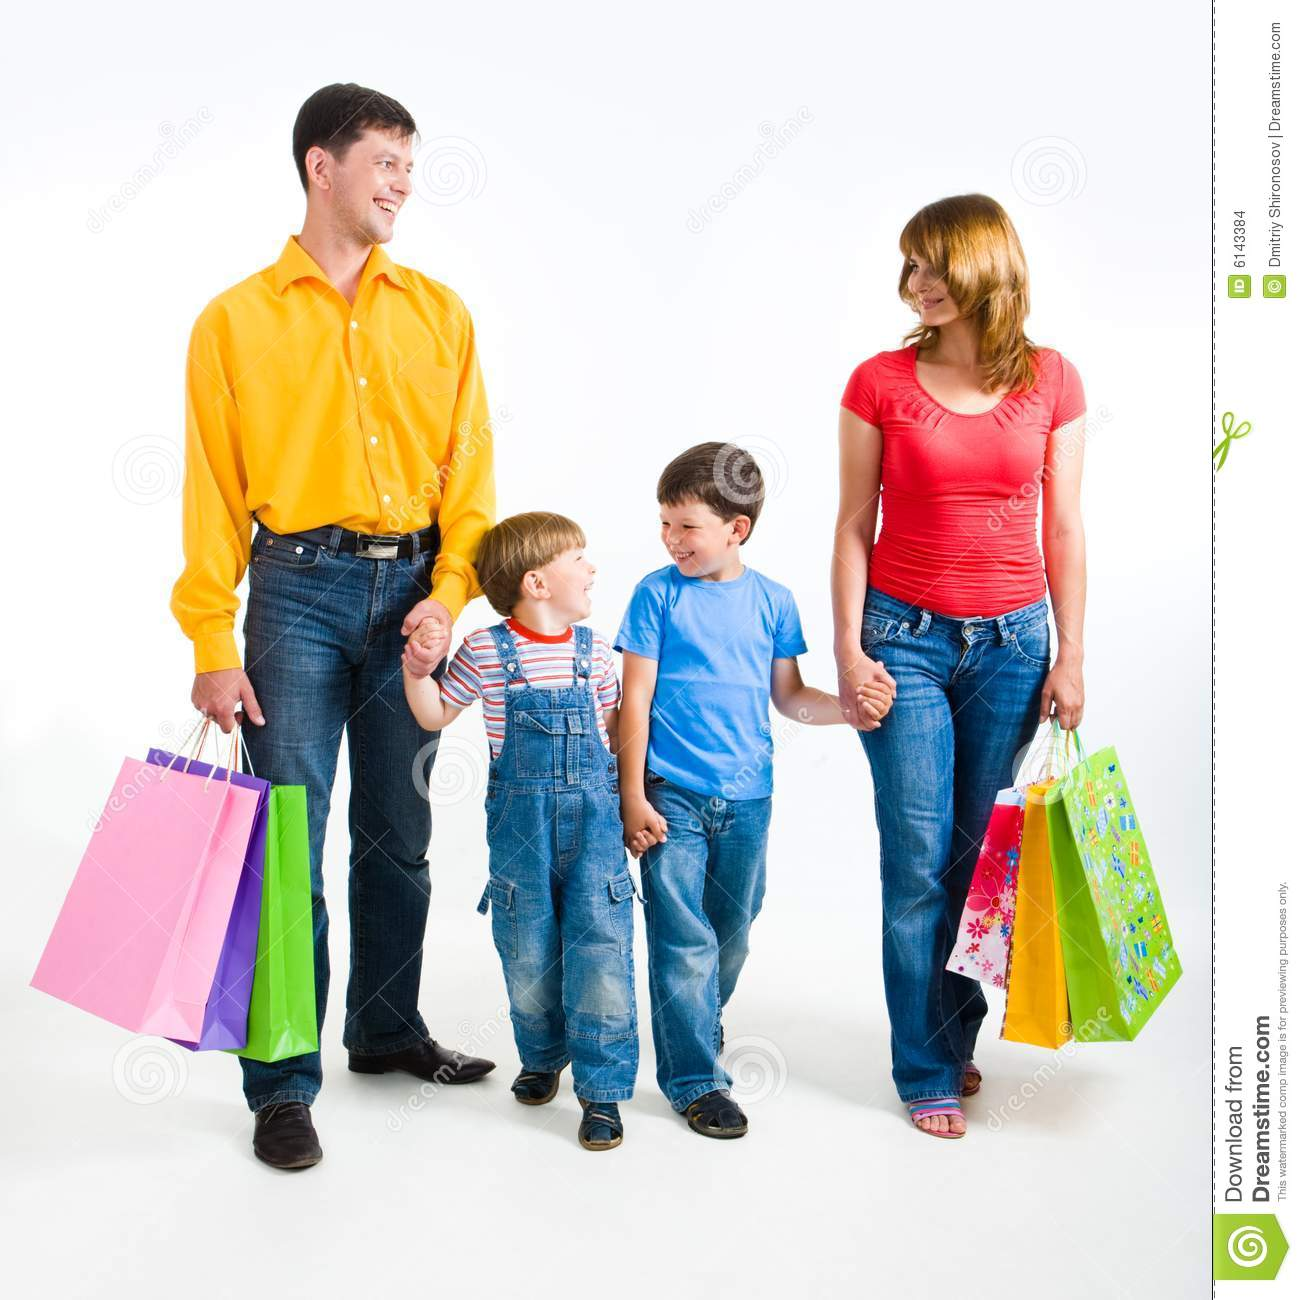 Family Shopping Stock Images - Image: 6143384